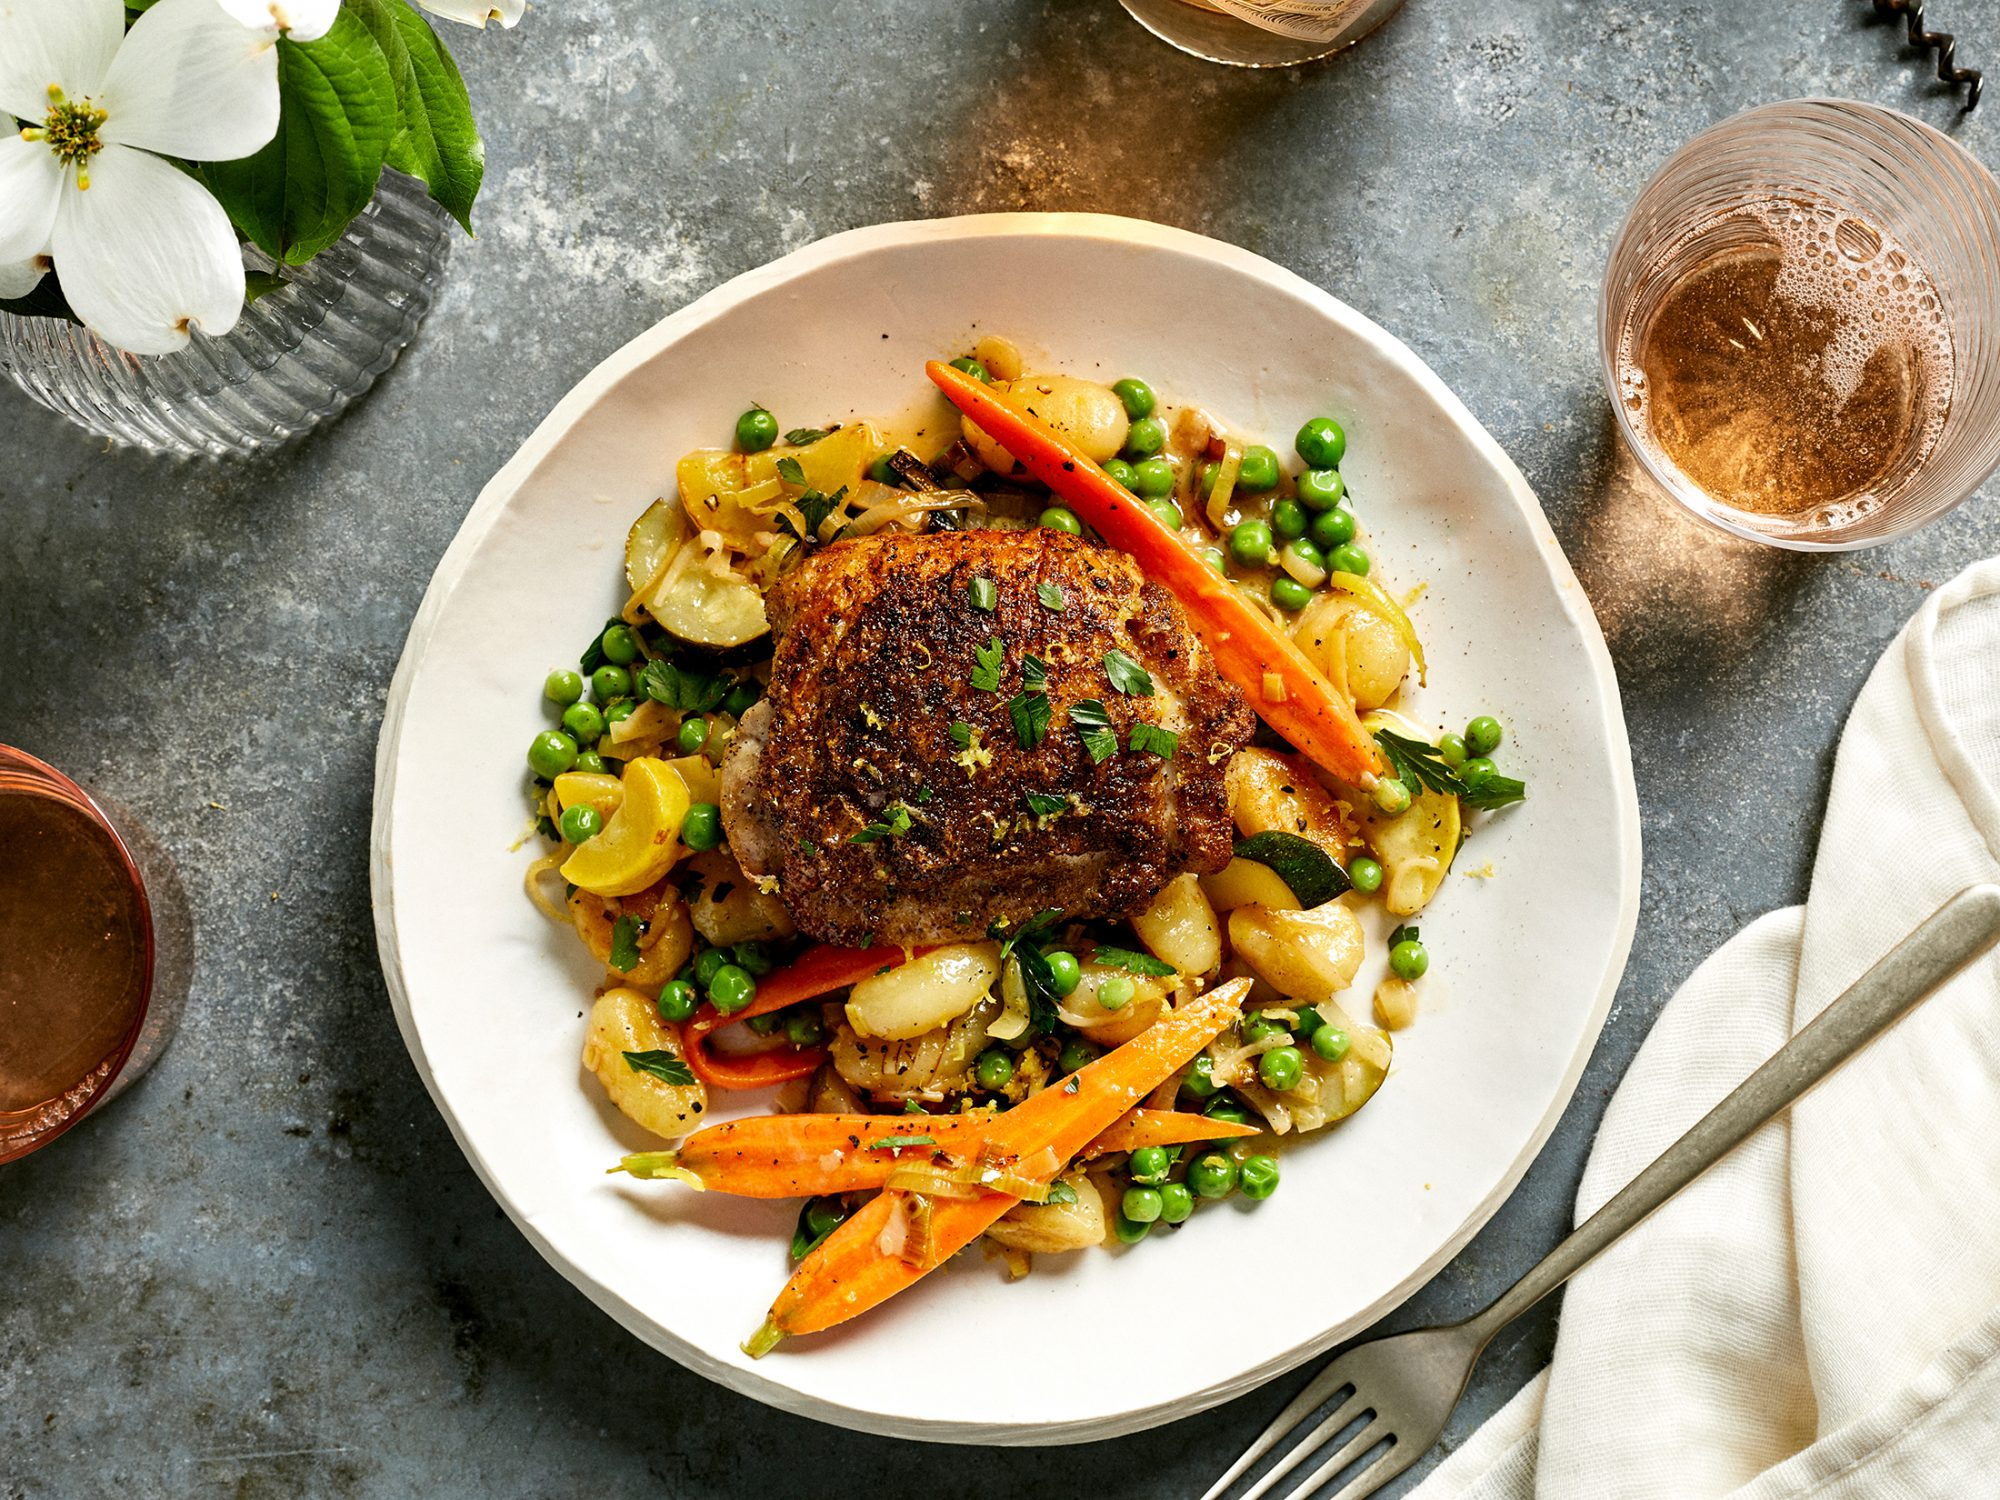 Coriander Chicken Thighs with Spring Vegetables, Gnocchi, and Lemon Butter Sauce image